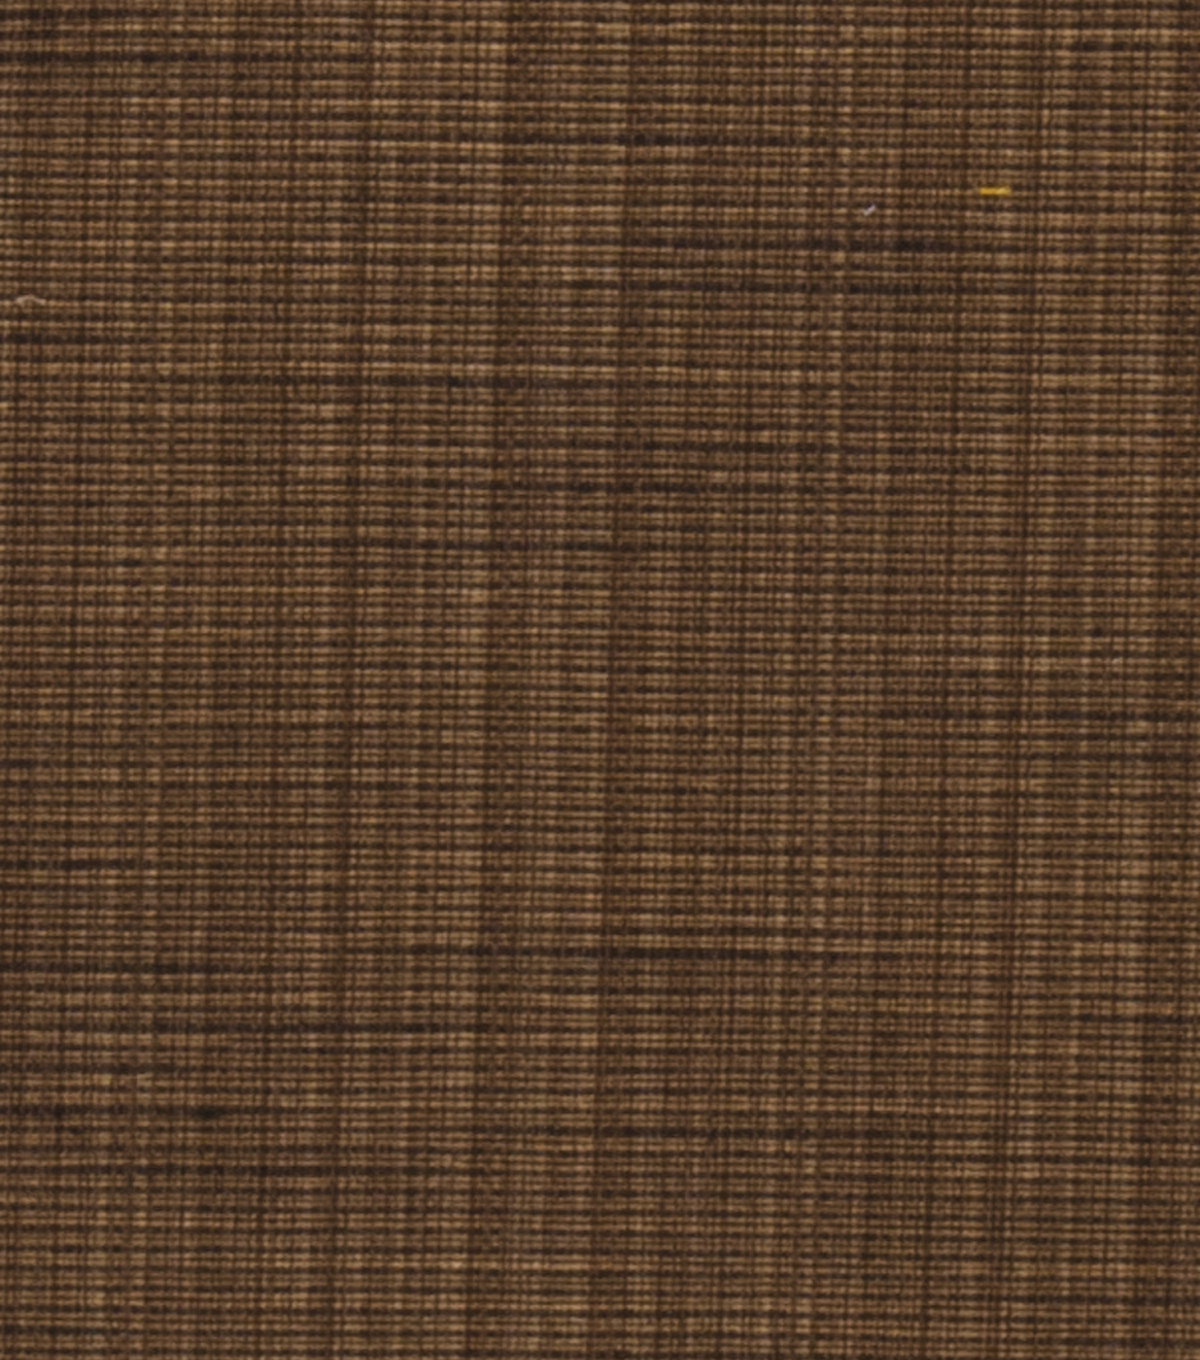 Home Decor 8\u0022x8\u0022 Fabric Swatch-Eaton Square Mother /  Mocha